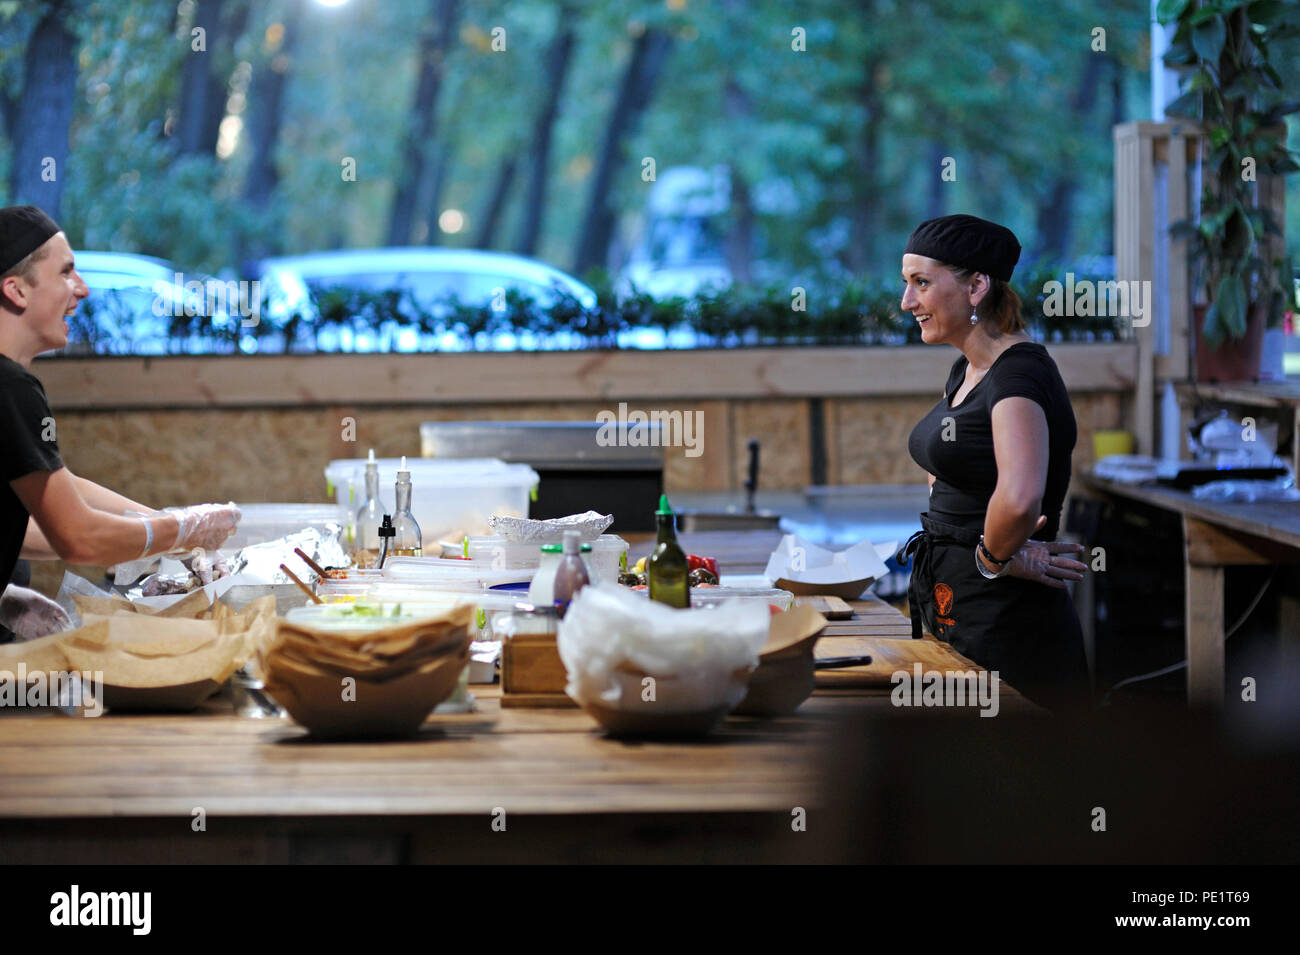 Waiter and waitress communicate while preparing fast food meals on a kitchen table of a restaurant. July 25, 2018. Kiev, Ukraine - Stock Image